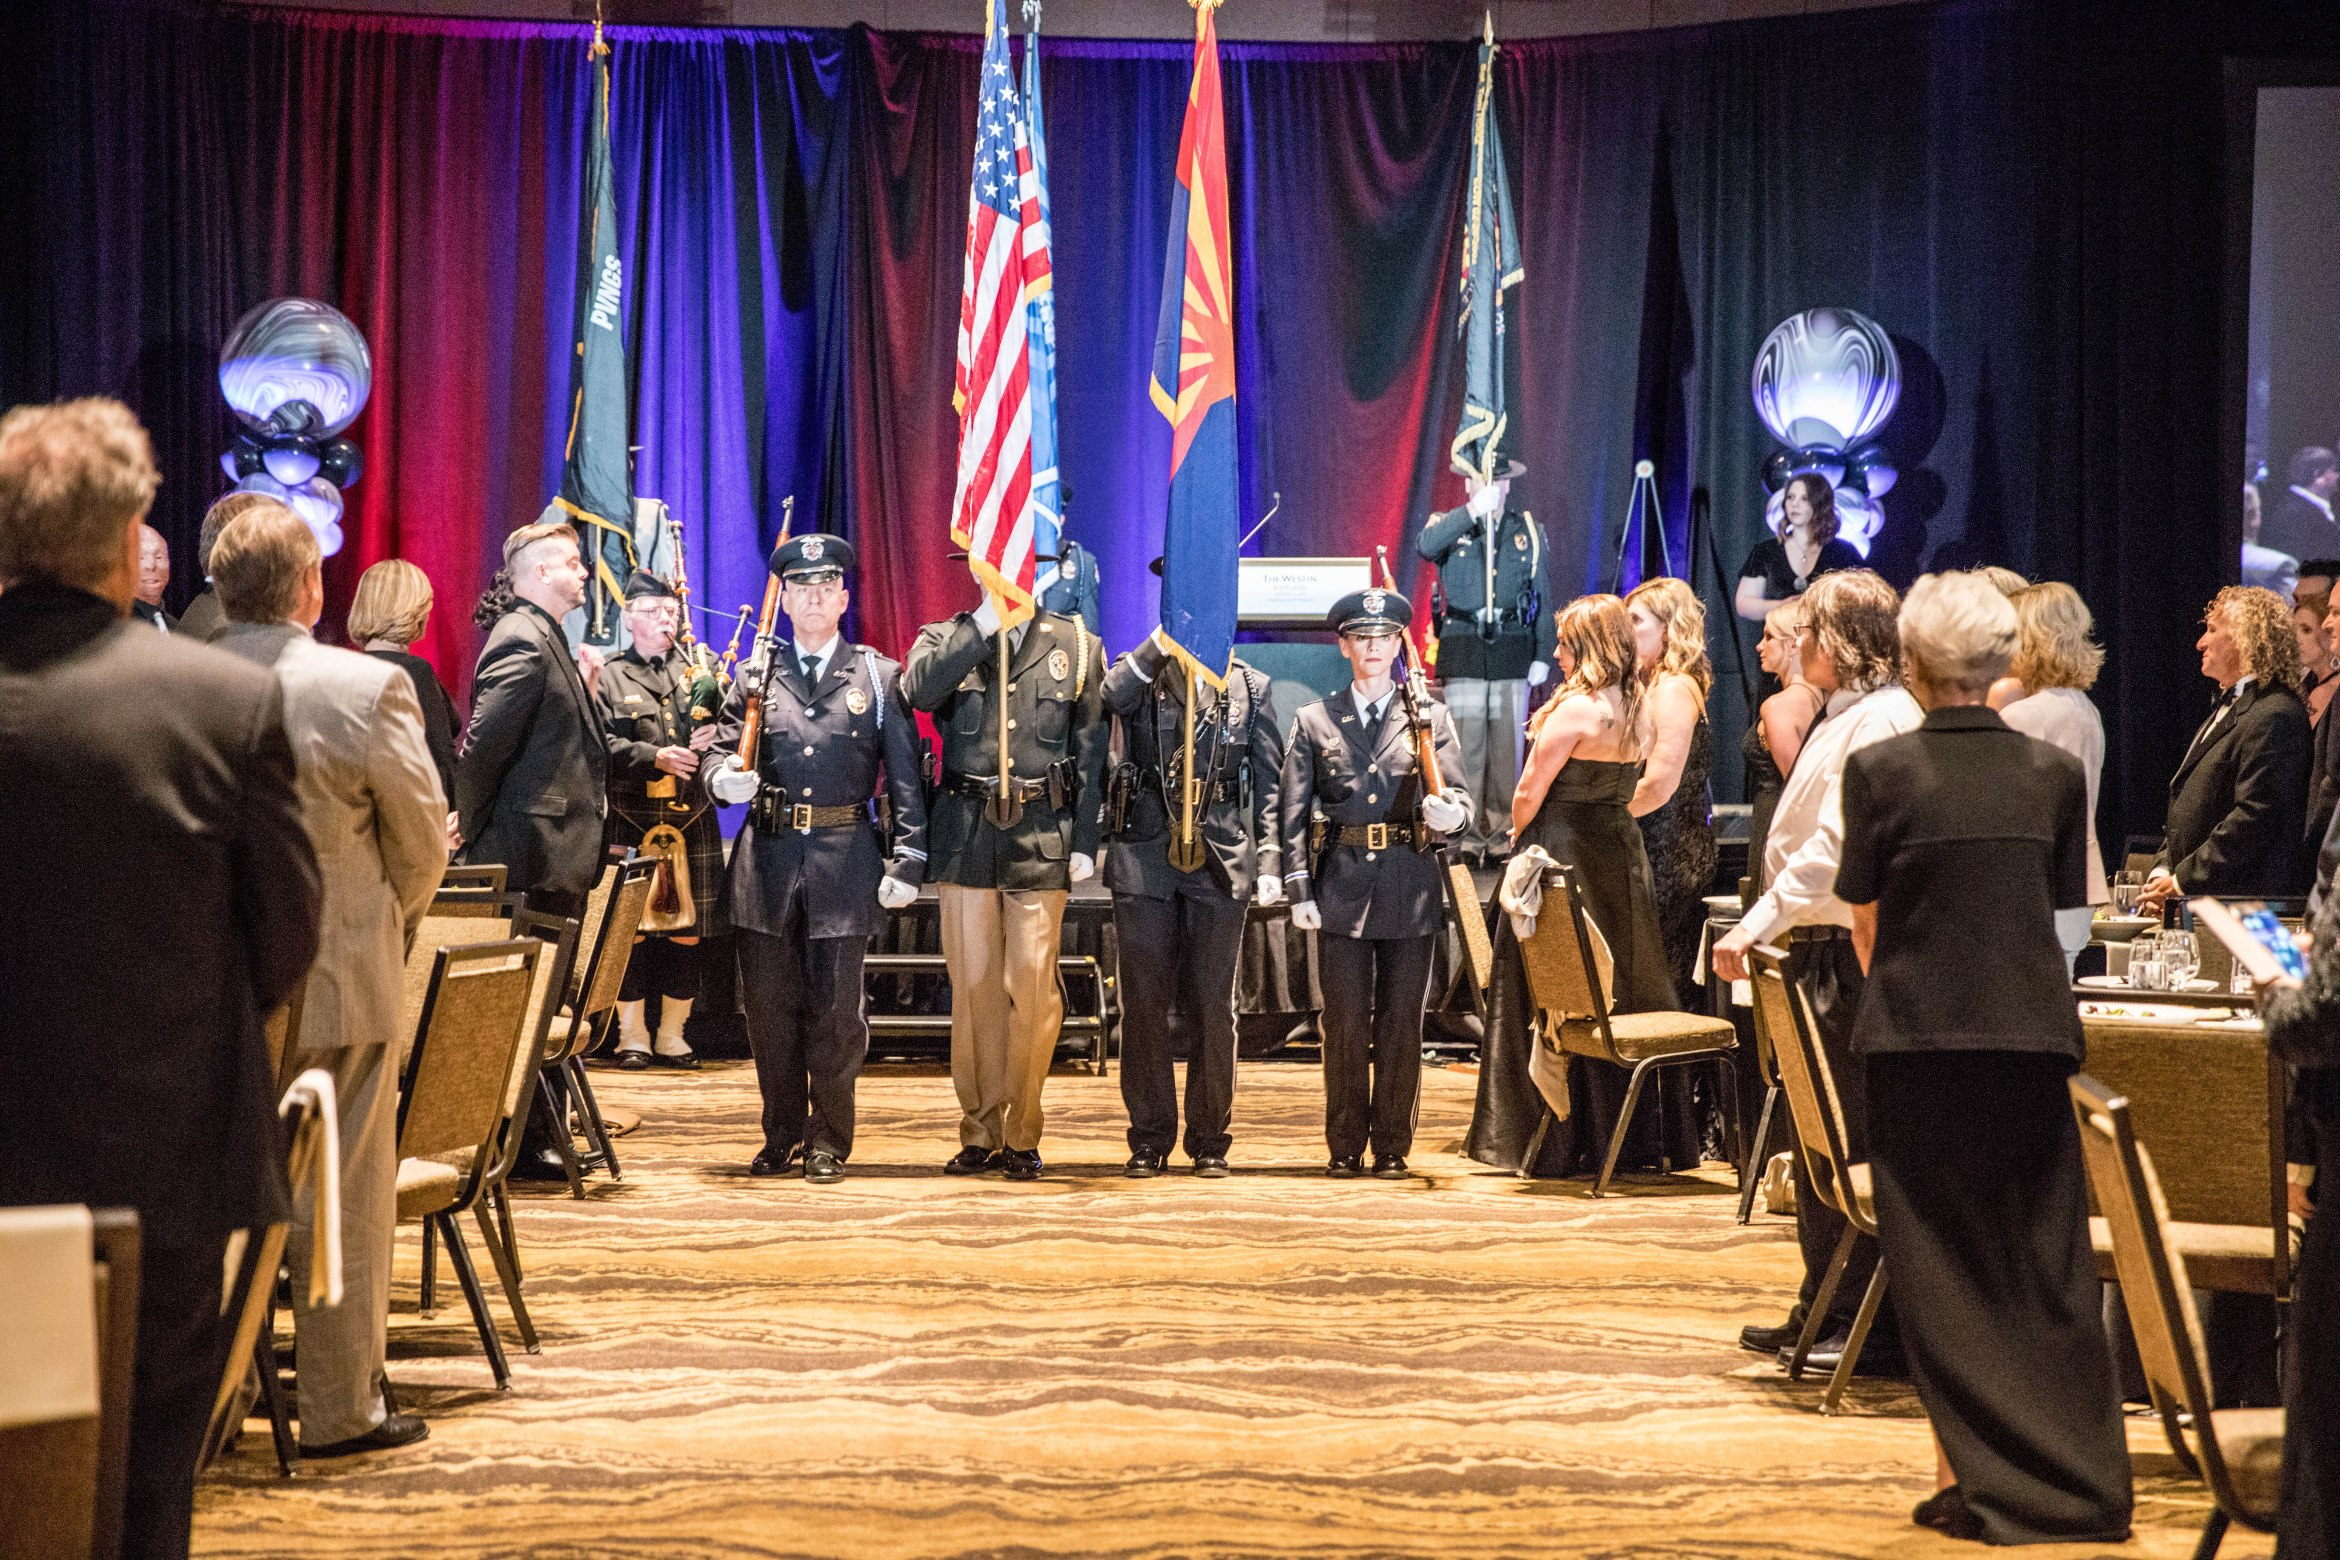 four men and women in color guard stand at attention at a event aribella photography event pictures